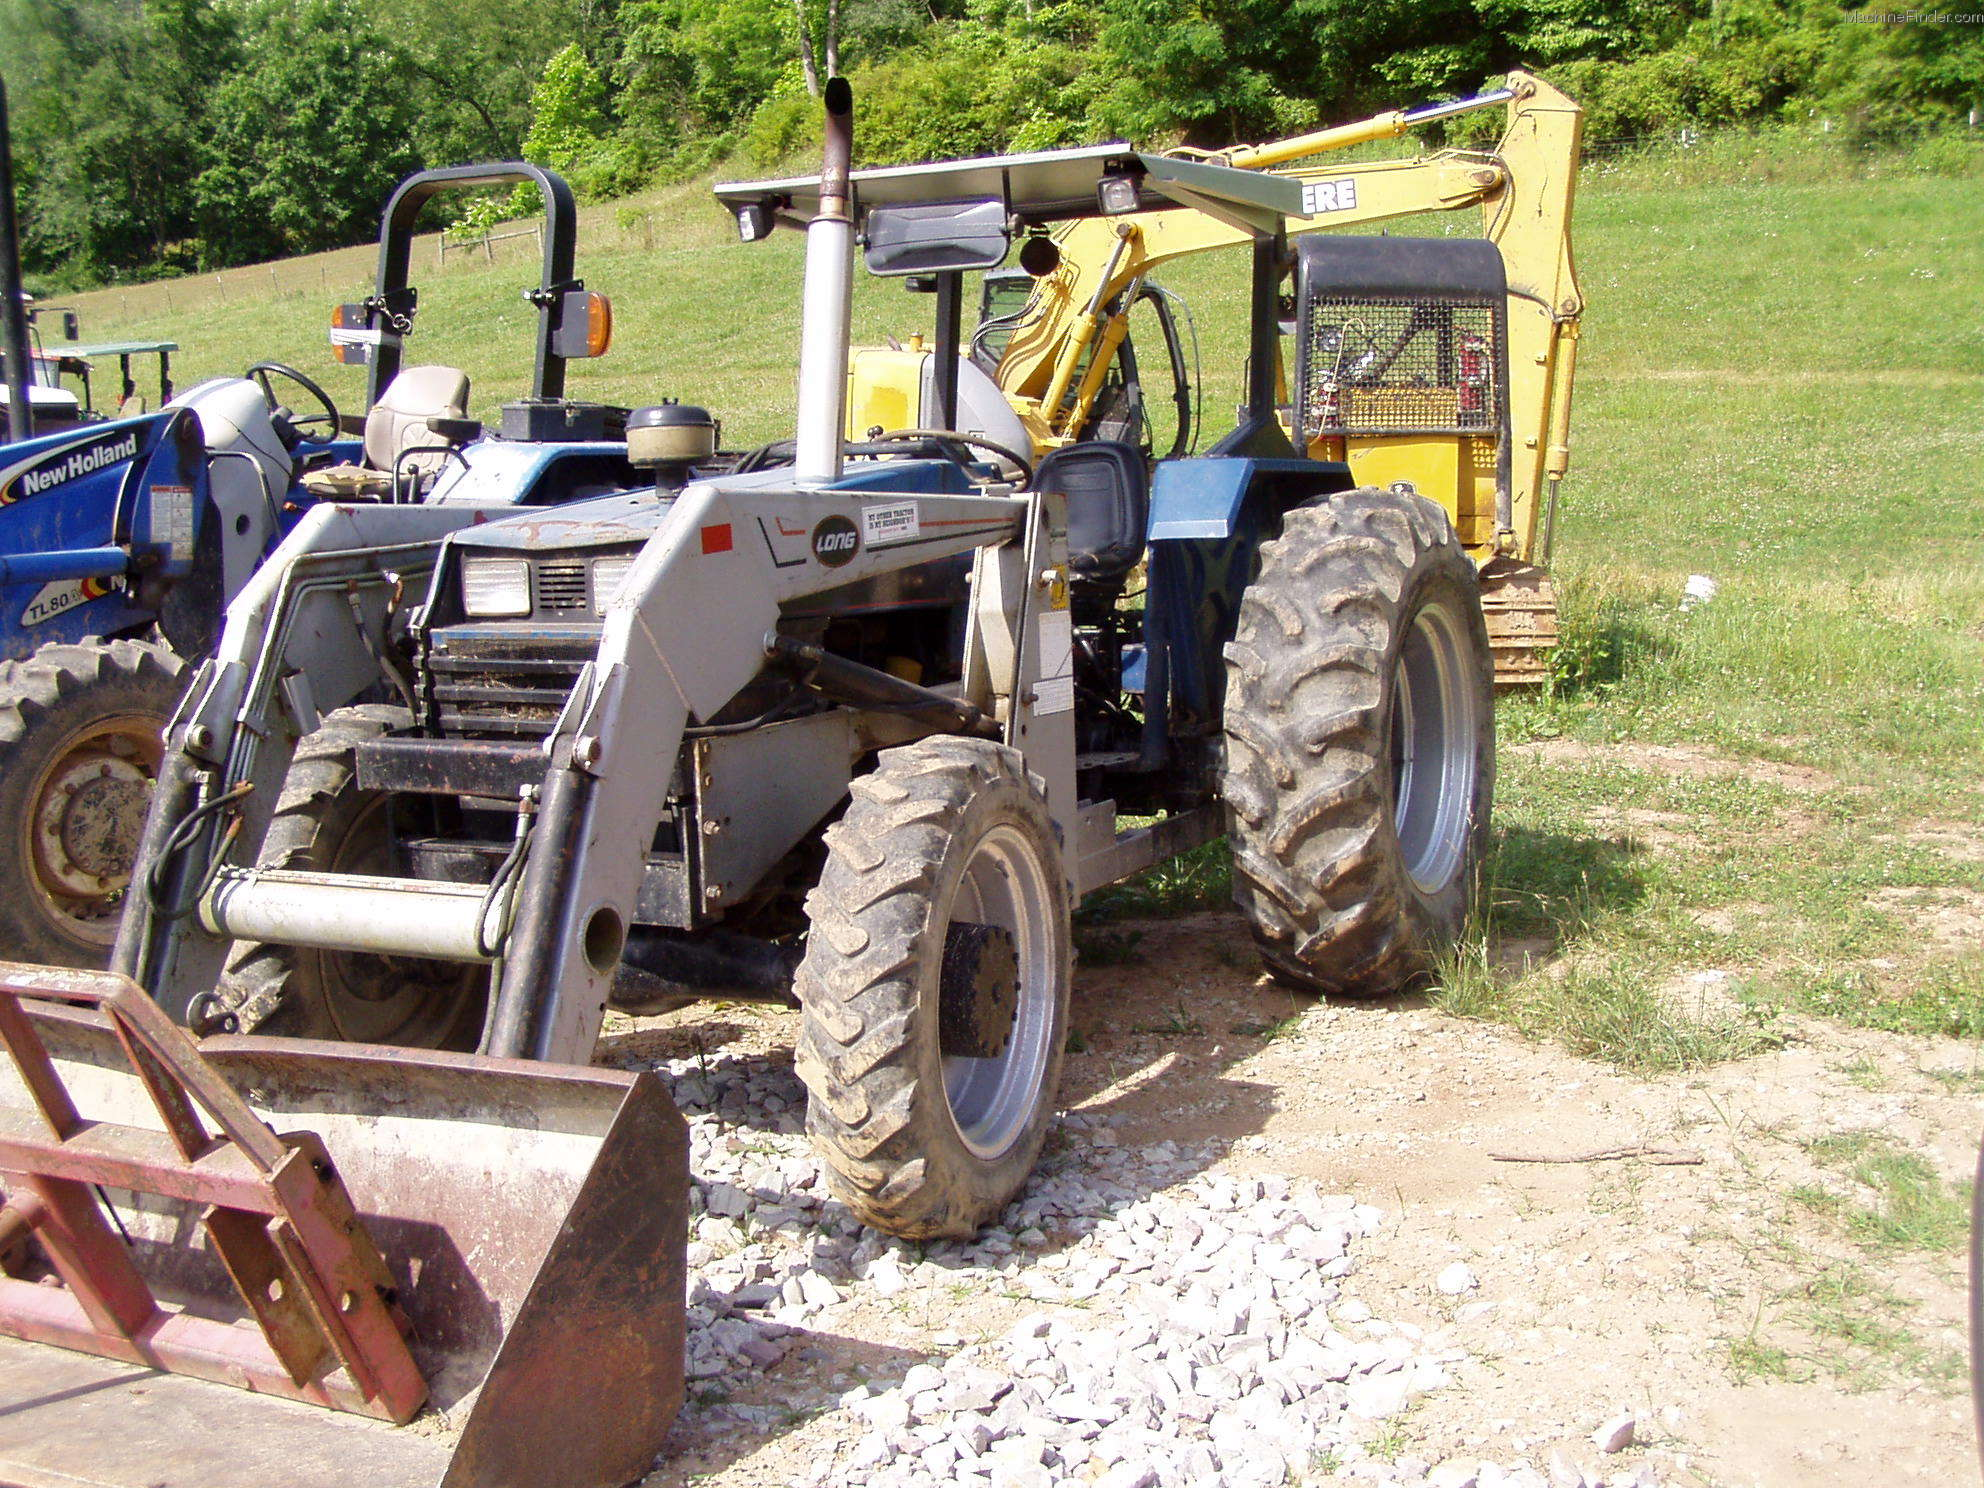 460 Long Tractor Hydraulic Filter : Long tractor parts bing images